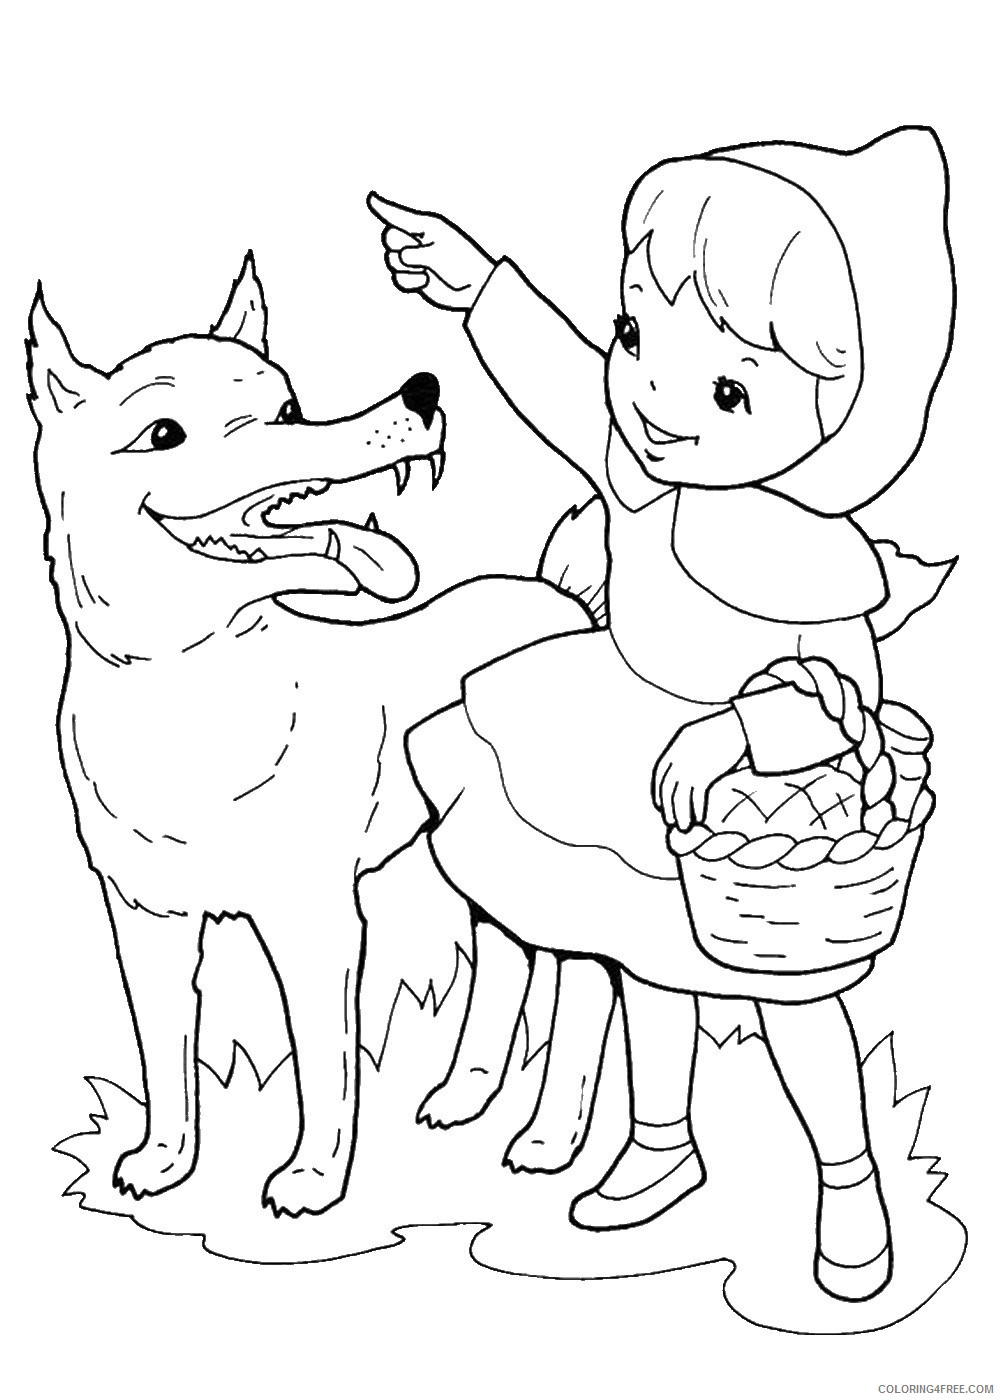 Little Red Riding Hood Coloring Pages Cartoons little_red_ridinghood_12 Printable 2020 3858 Coloring4free